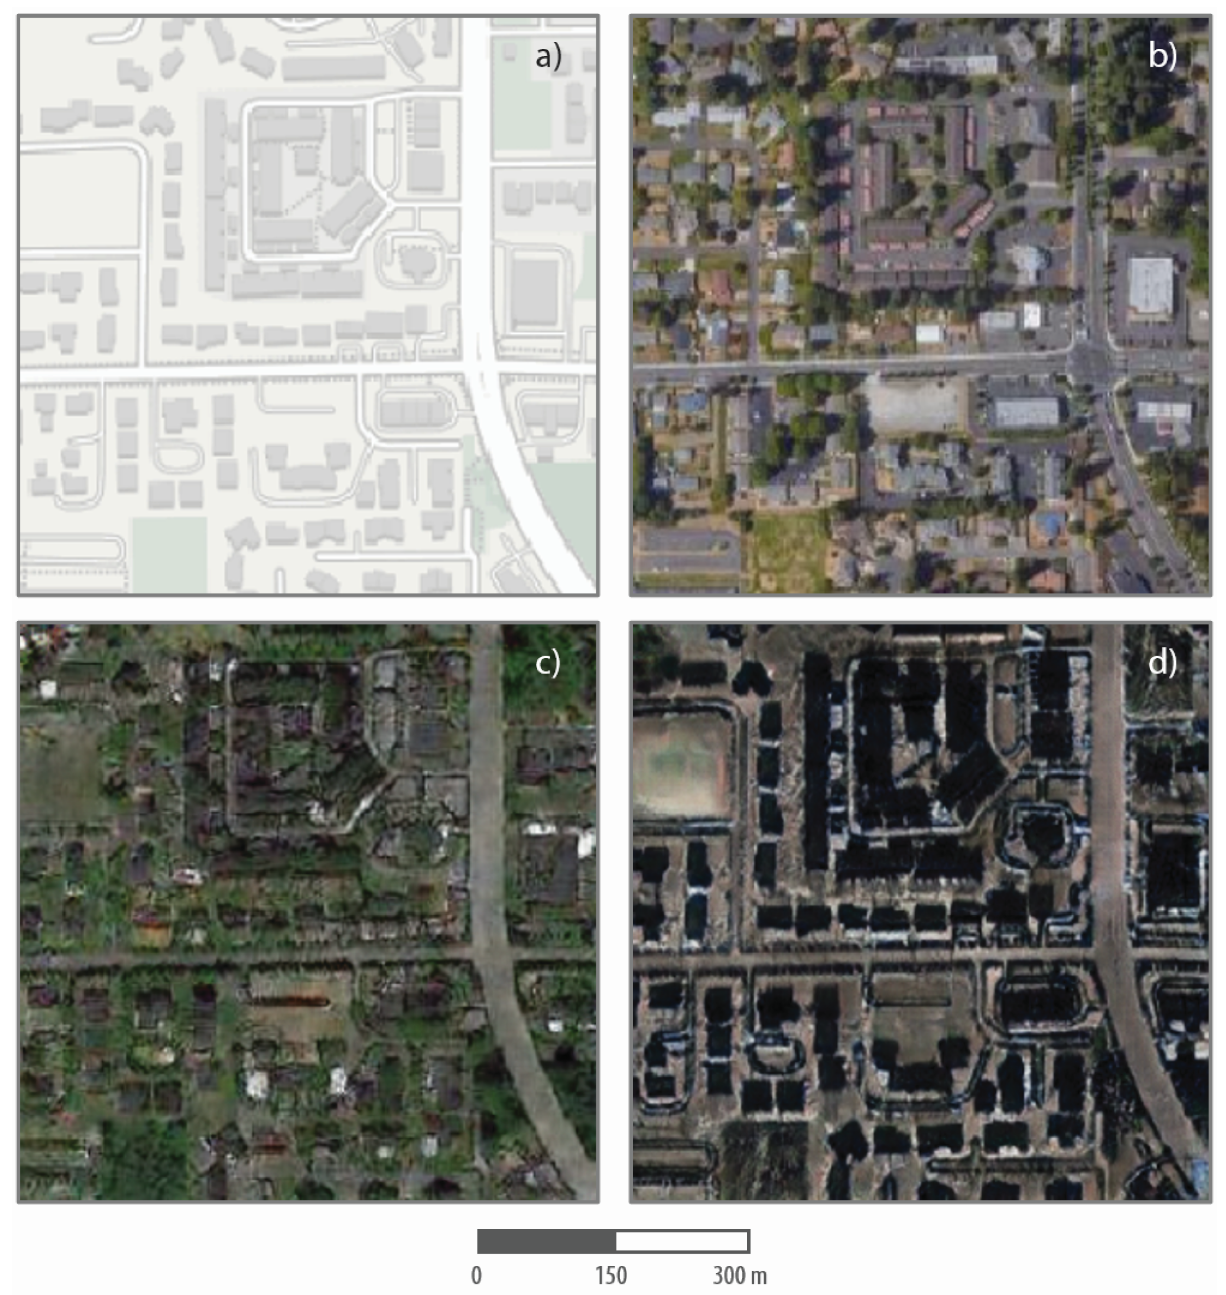 Four image samples show a street chart and a real satellite image of Tacoma, and two lab-created satellite images of the same roadway in Seattle and Beijing.